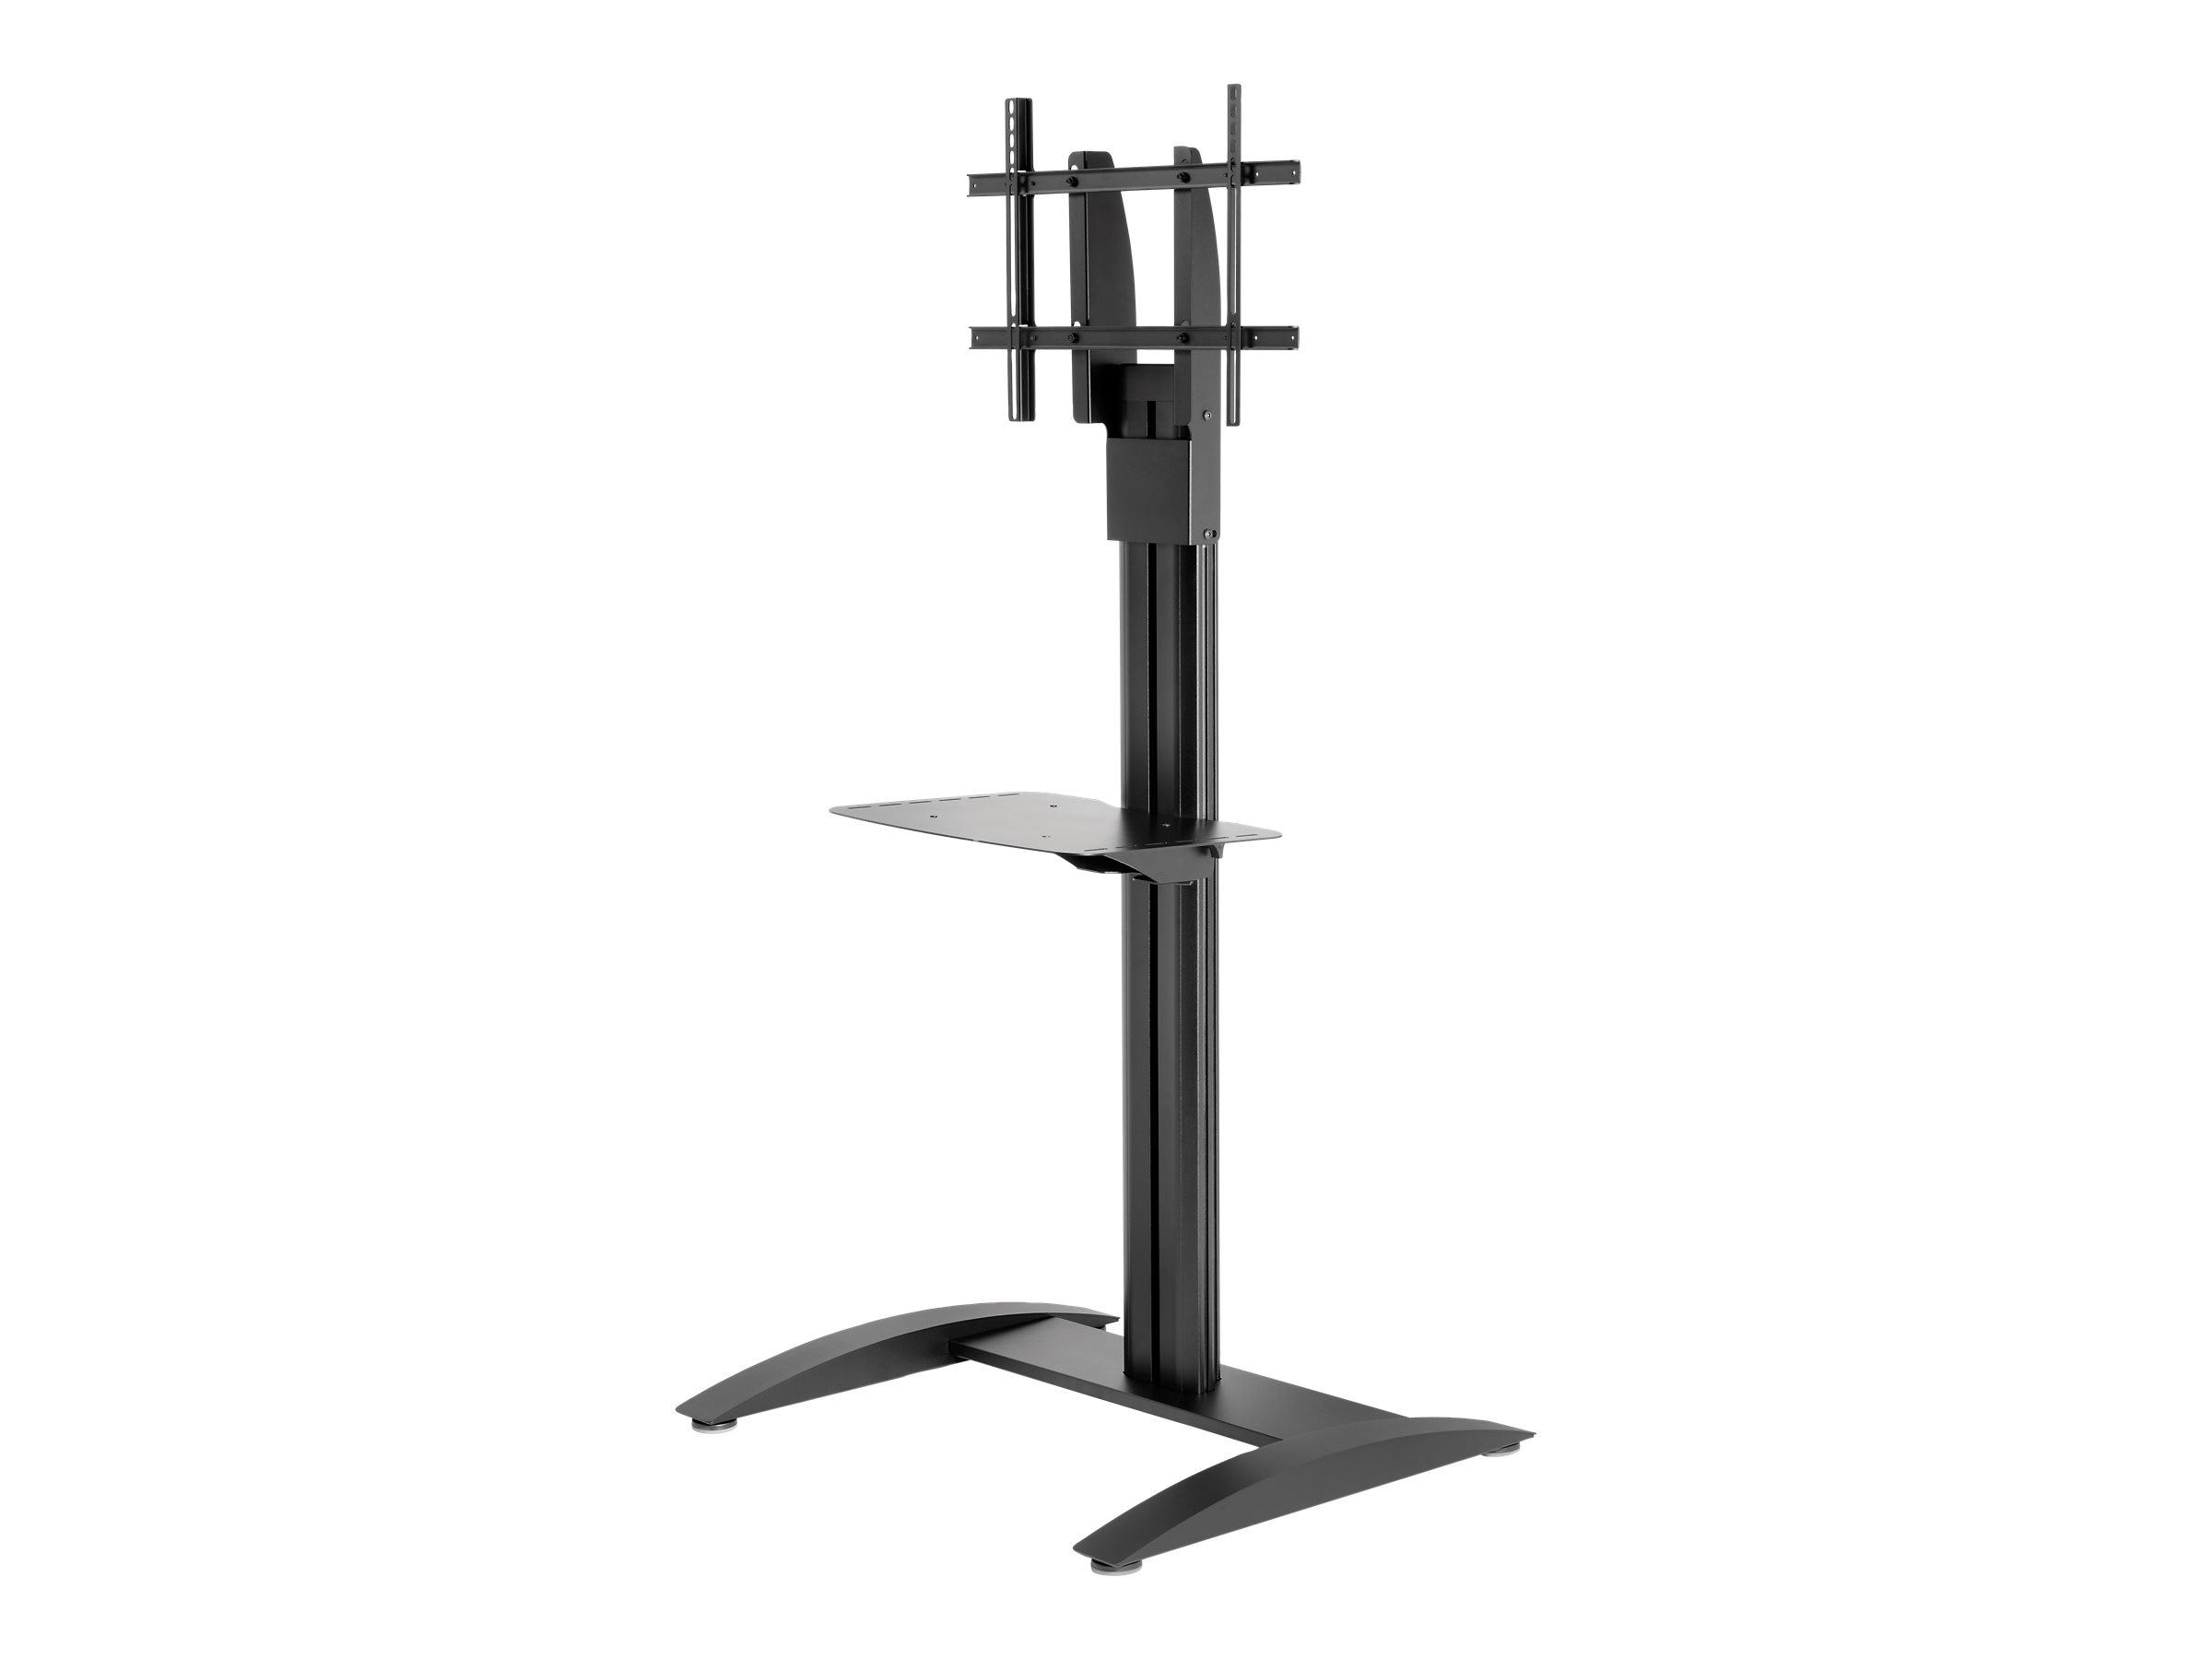 Peerless Flat Panel Stand for 32-65 Displays, SS560M